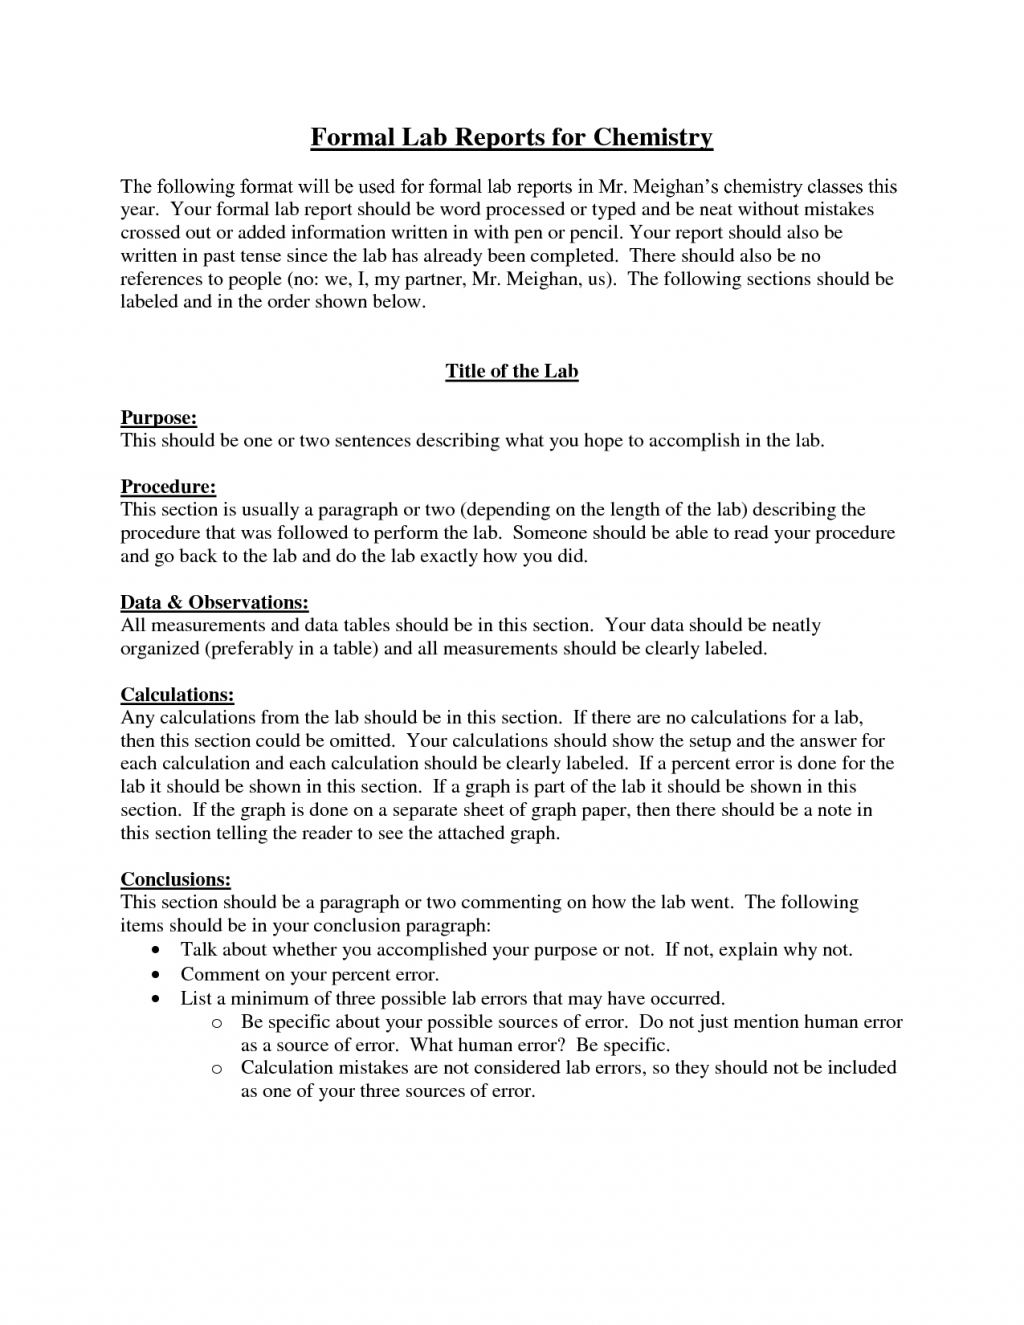 Formal lab report sample